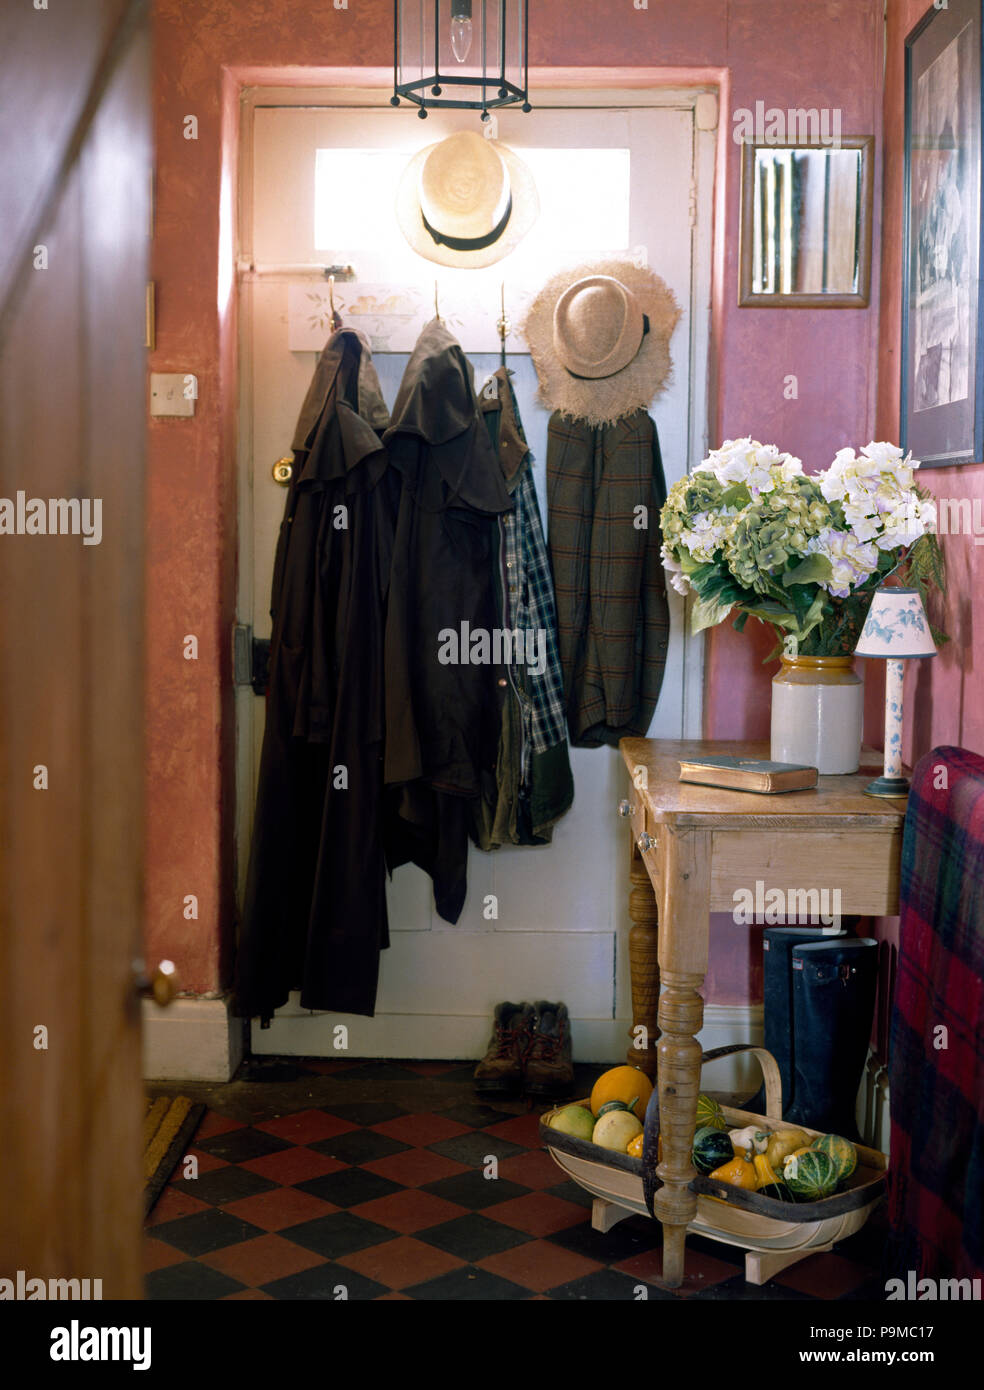 https www alamy com coats on the back of front door in pink cottage hall with an original red and black victorian tiled floor image212504803 html